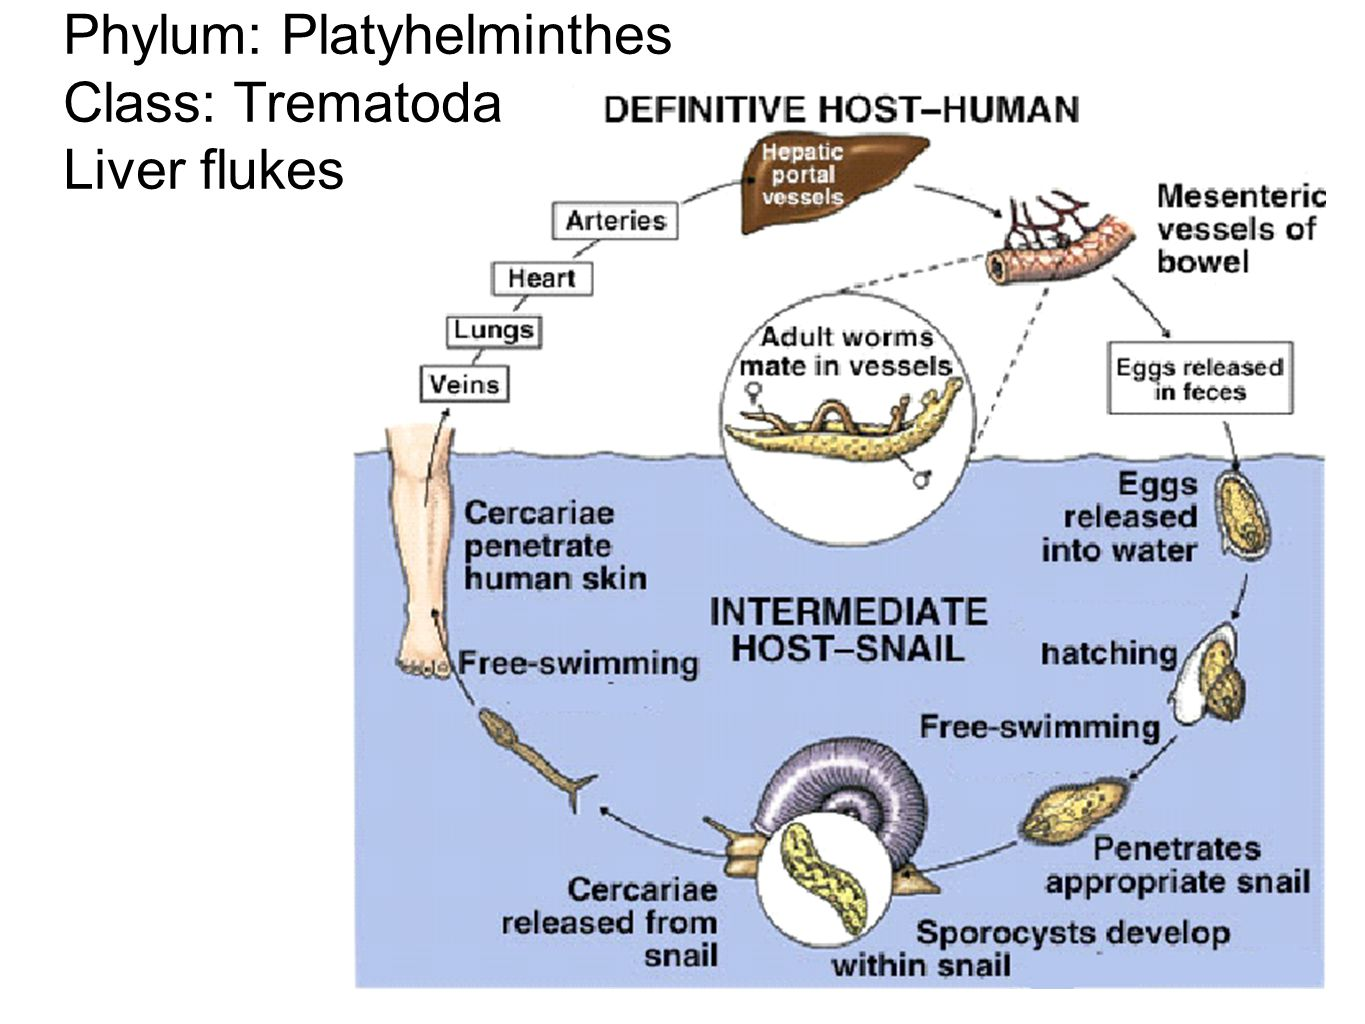 Phylum: Platyhelminthes Class: Trematoda Liver flukes